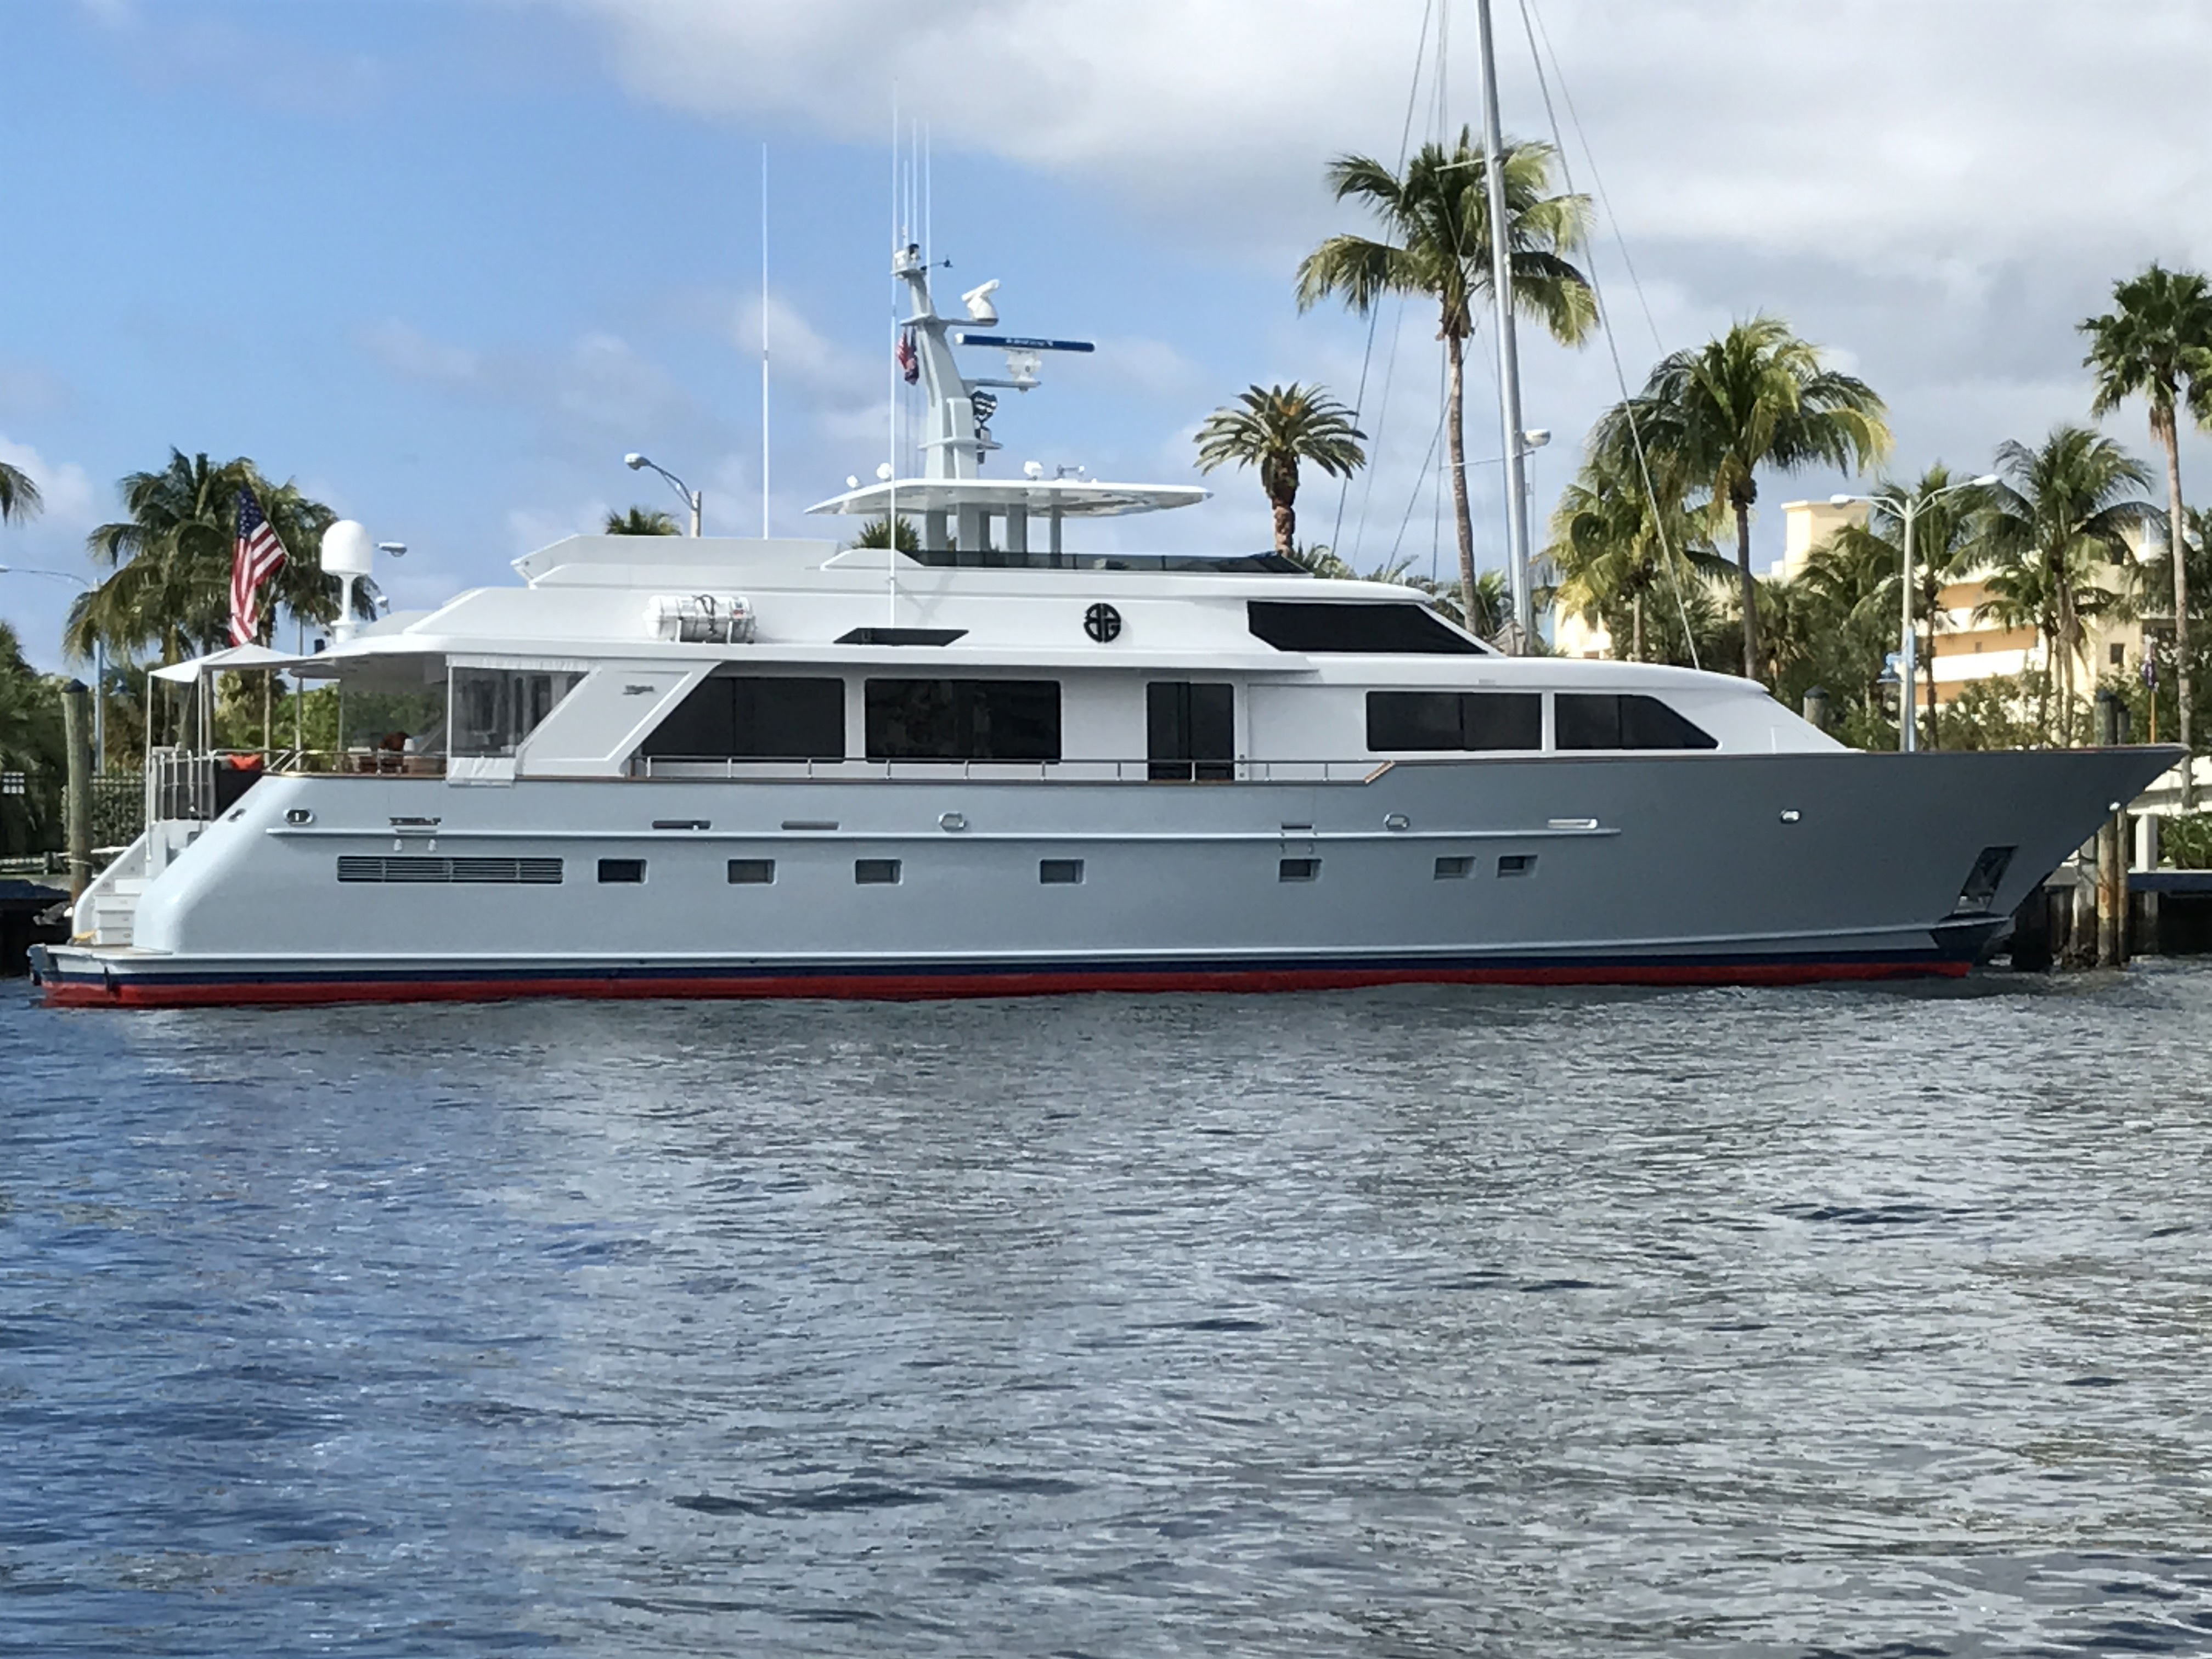 SEA BOUND specs with detailed specification and builder summary